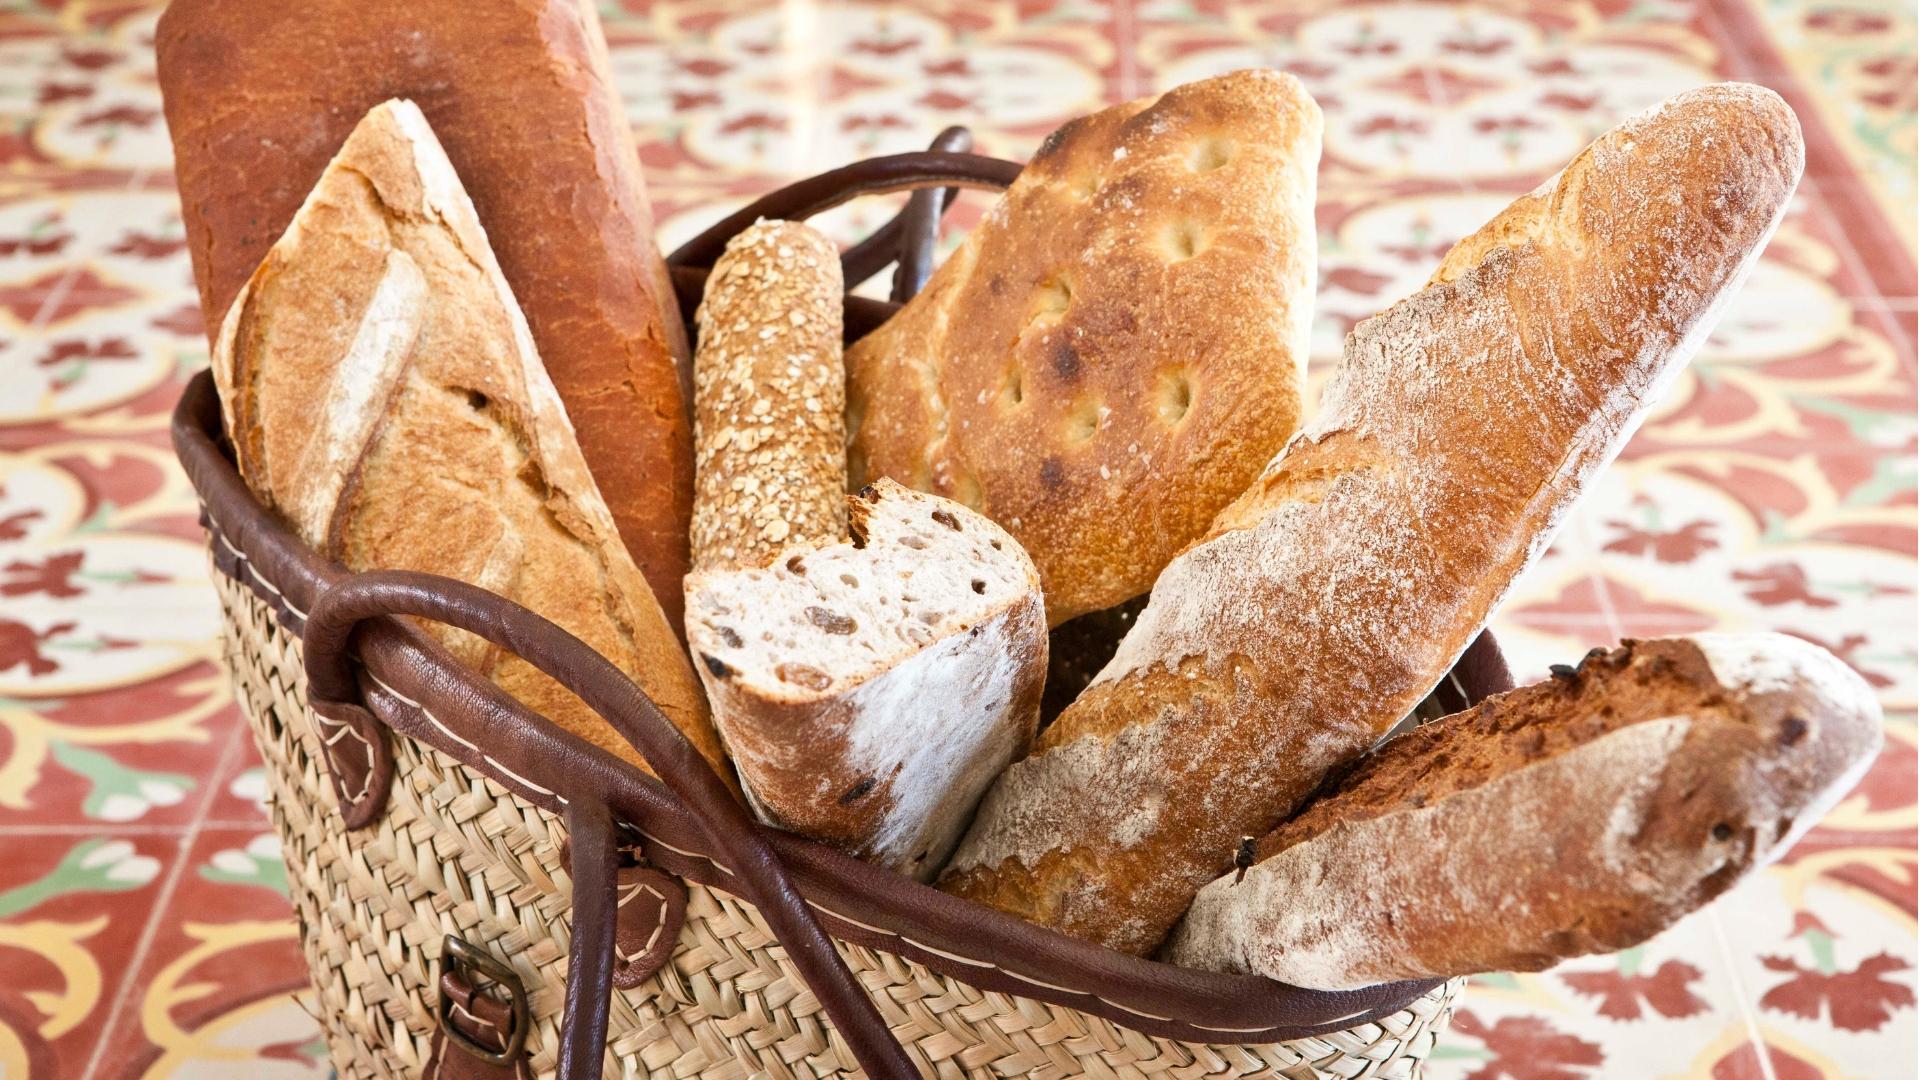 A large basket of different breads and baguettes stands on the tiled floor of the Olivera Restaurant in Castell Son Claret.